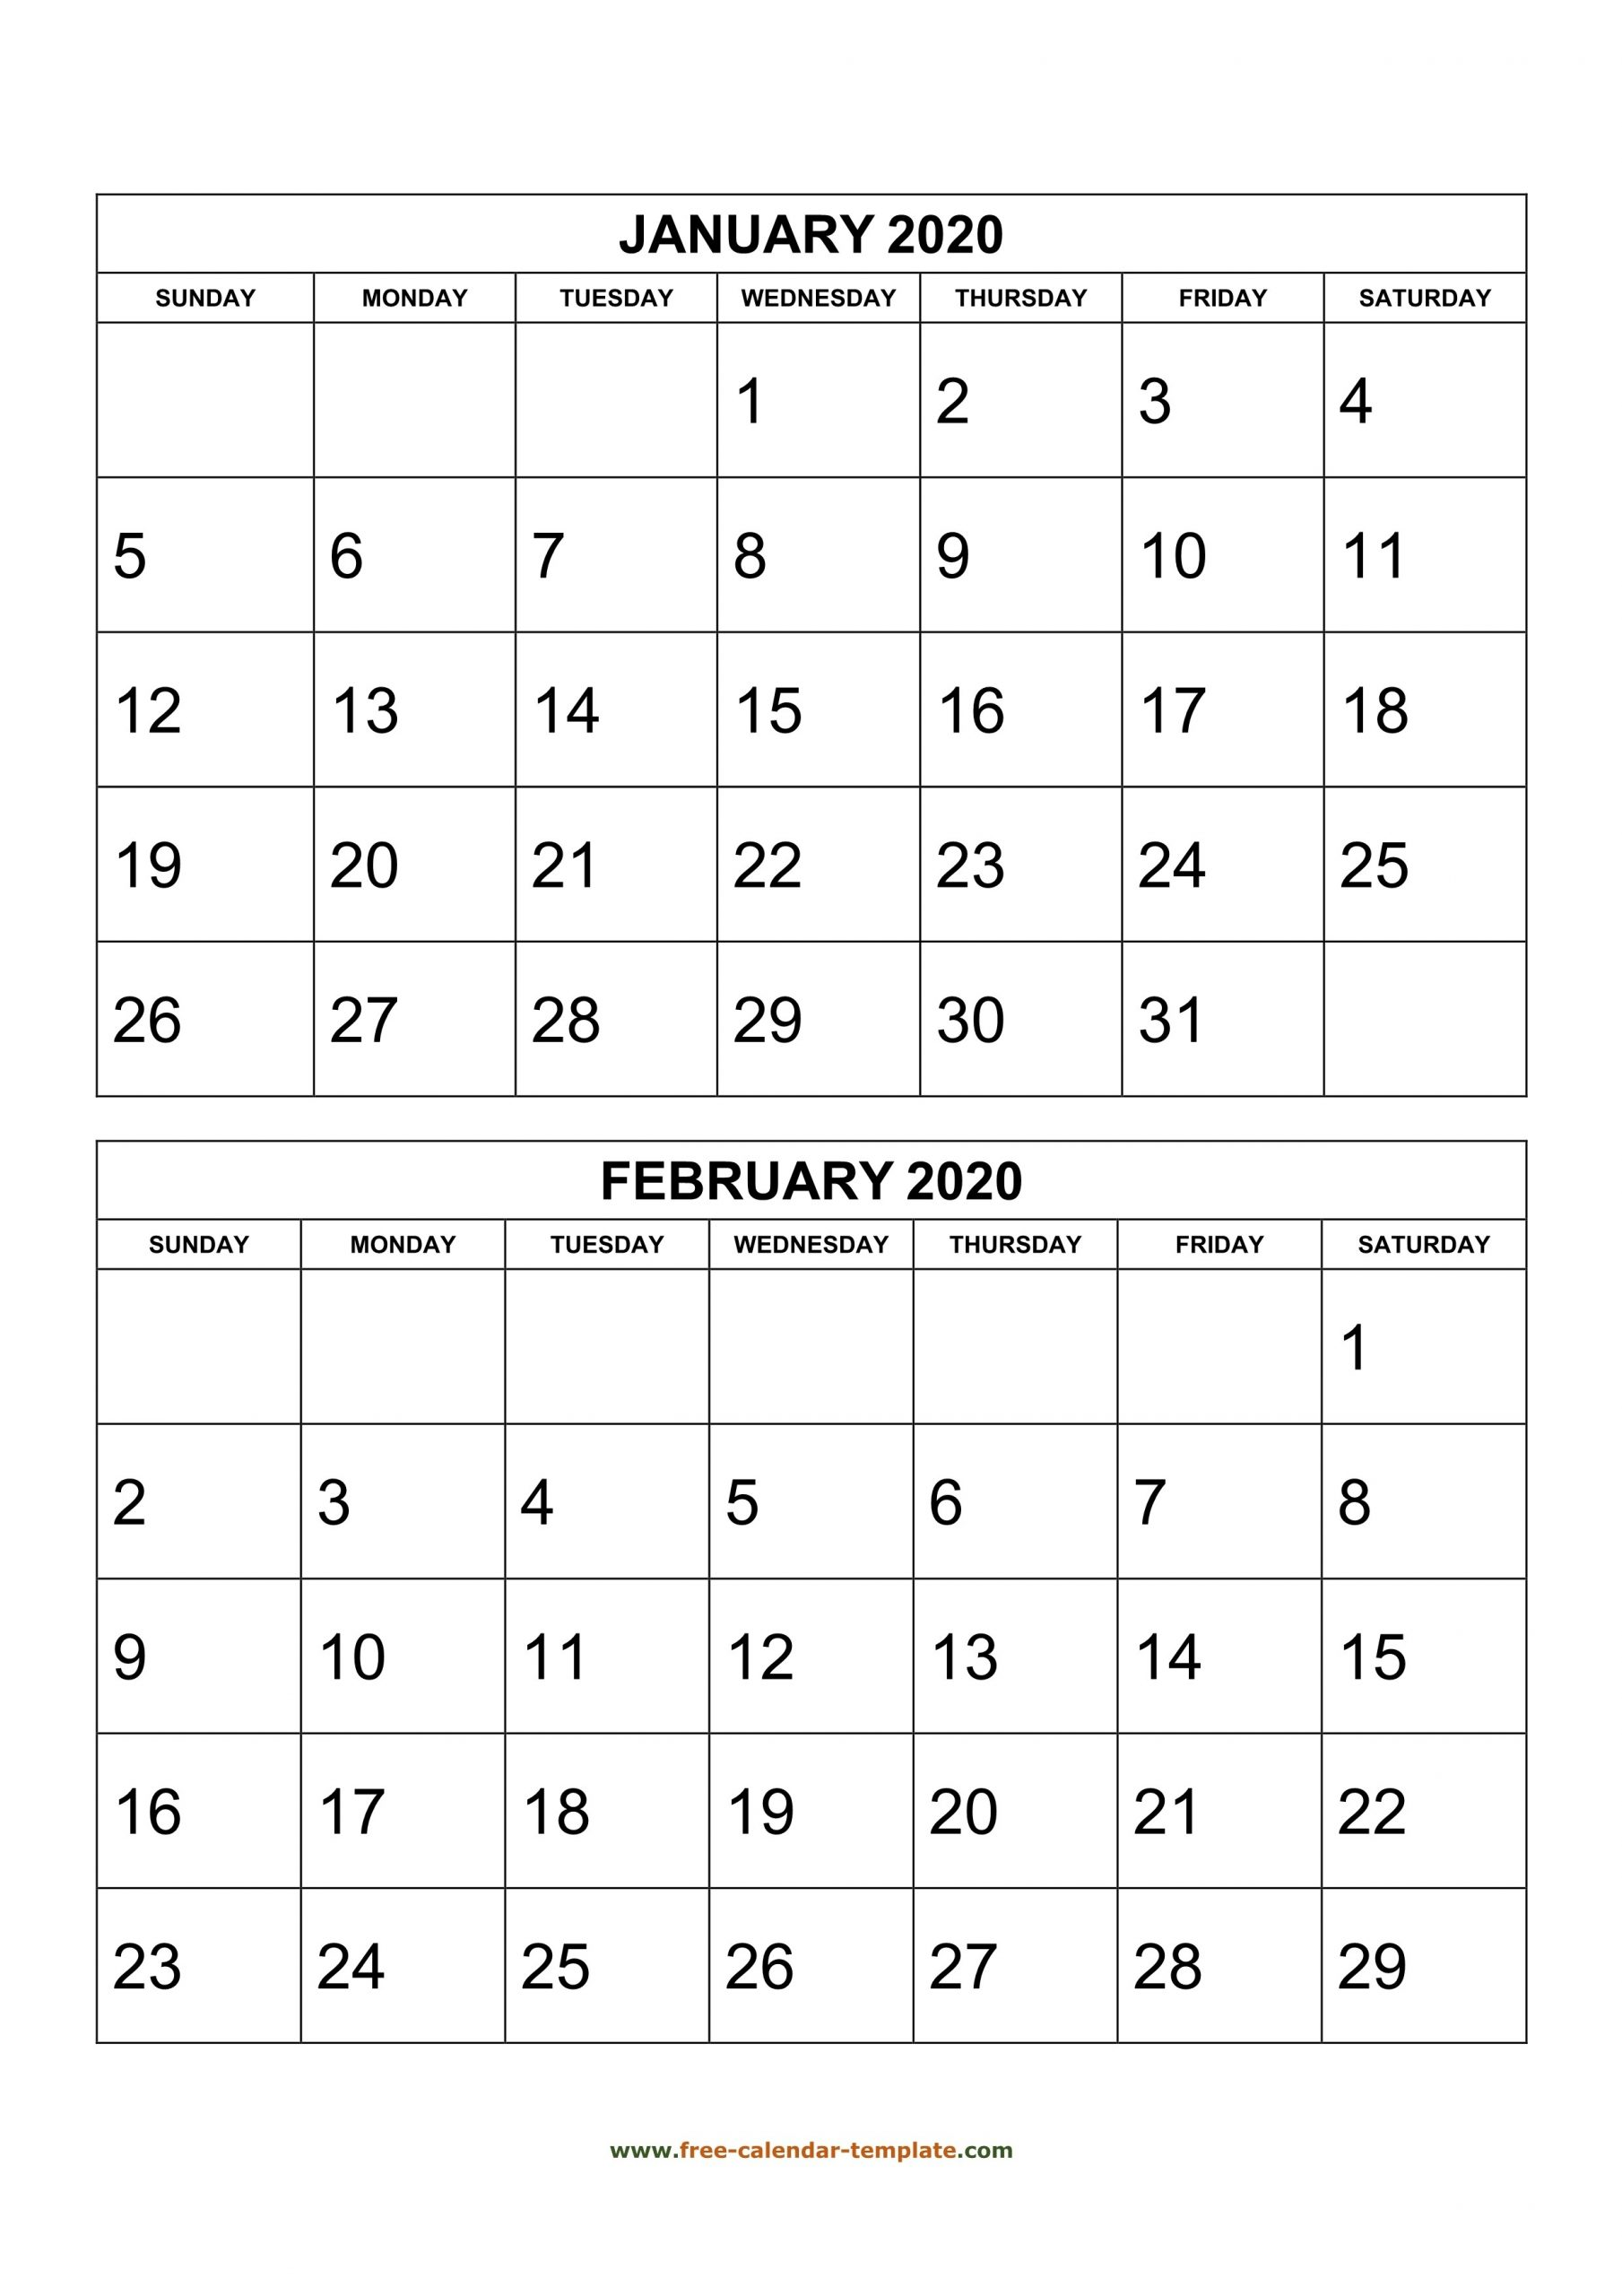 Monthly Calendar 2020, 2 Months Per Page (Vertical) | Free  Two-Month Calendar Printable